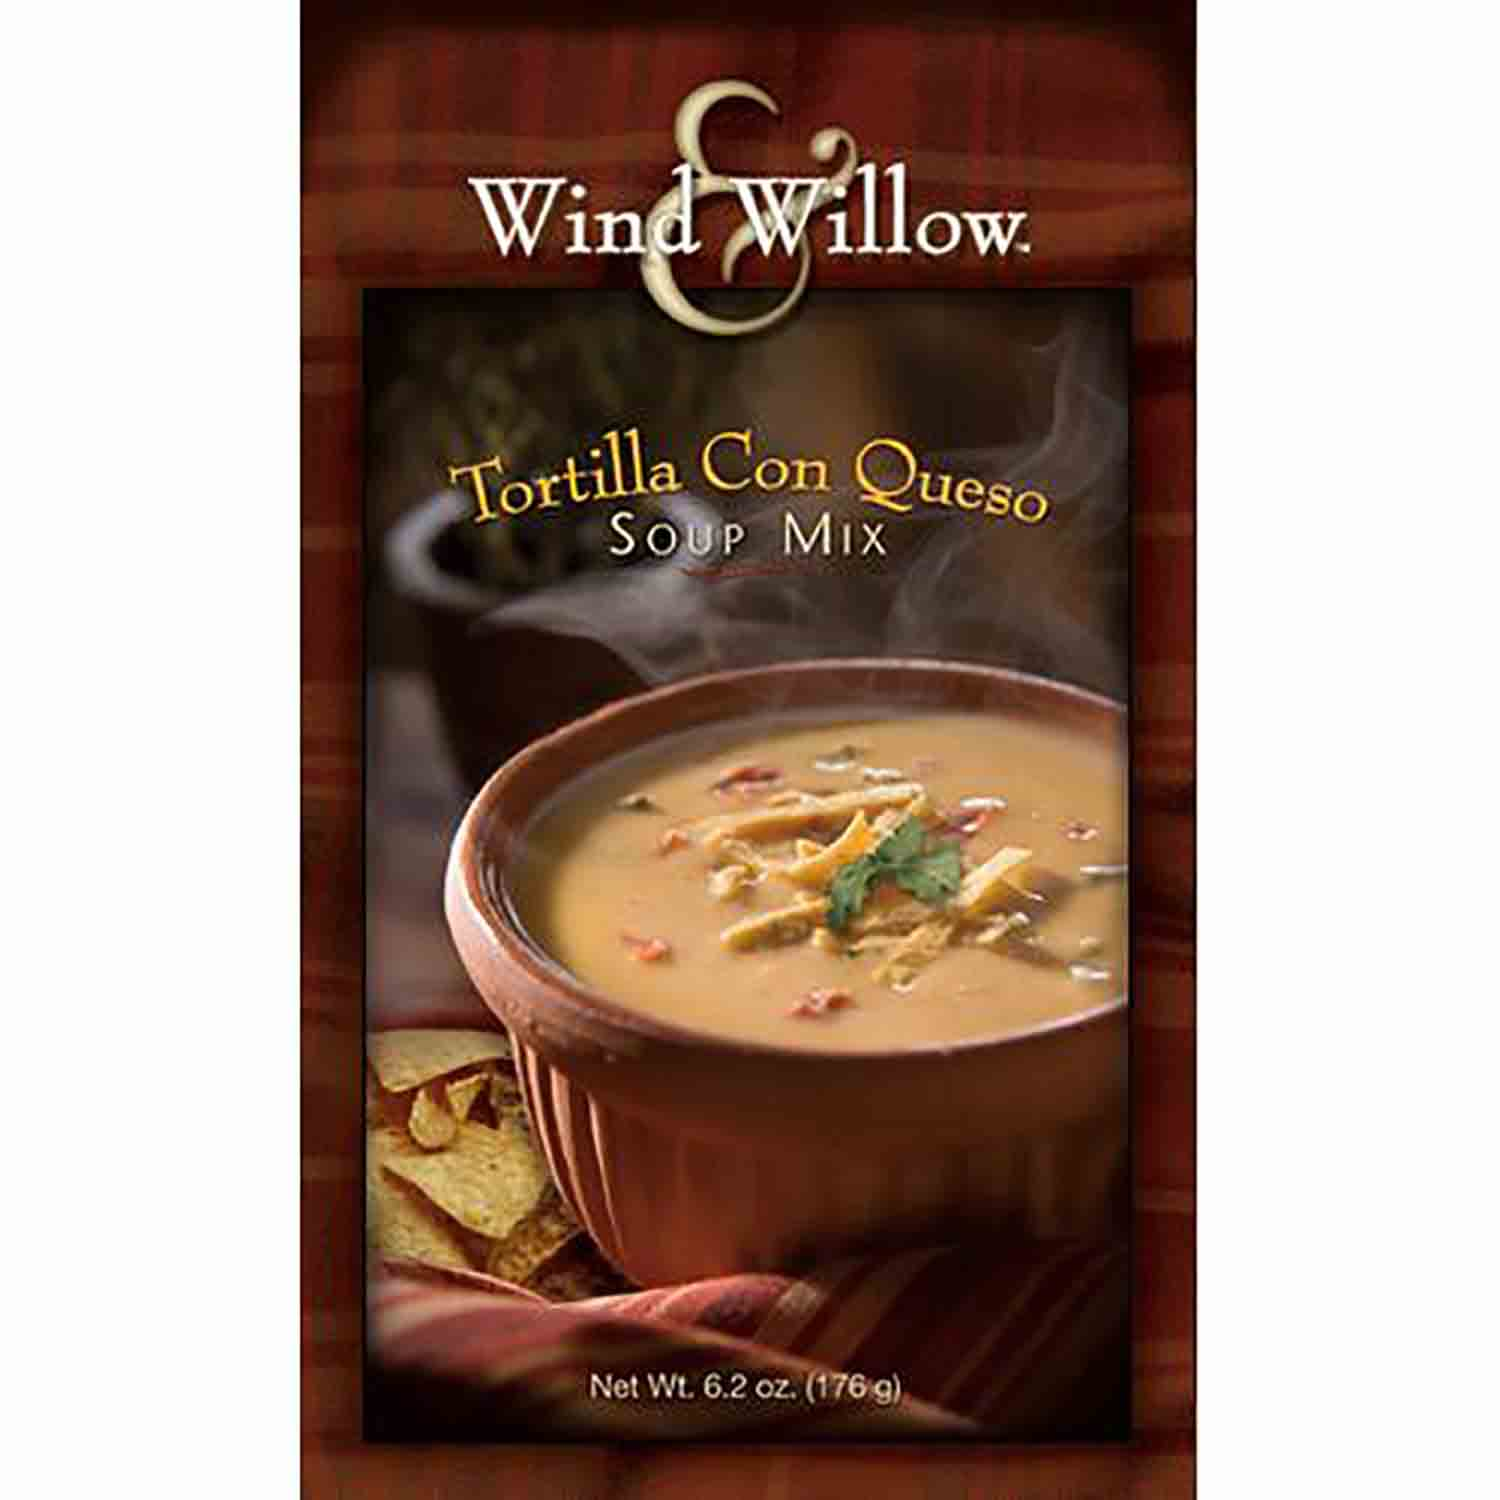 Tortilla Con Queso Wind & Willow Soup Mix